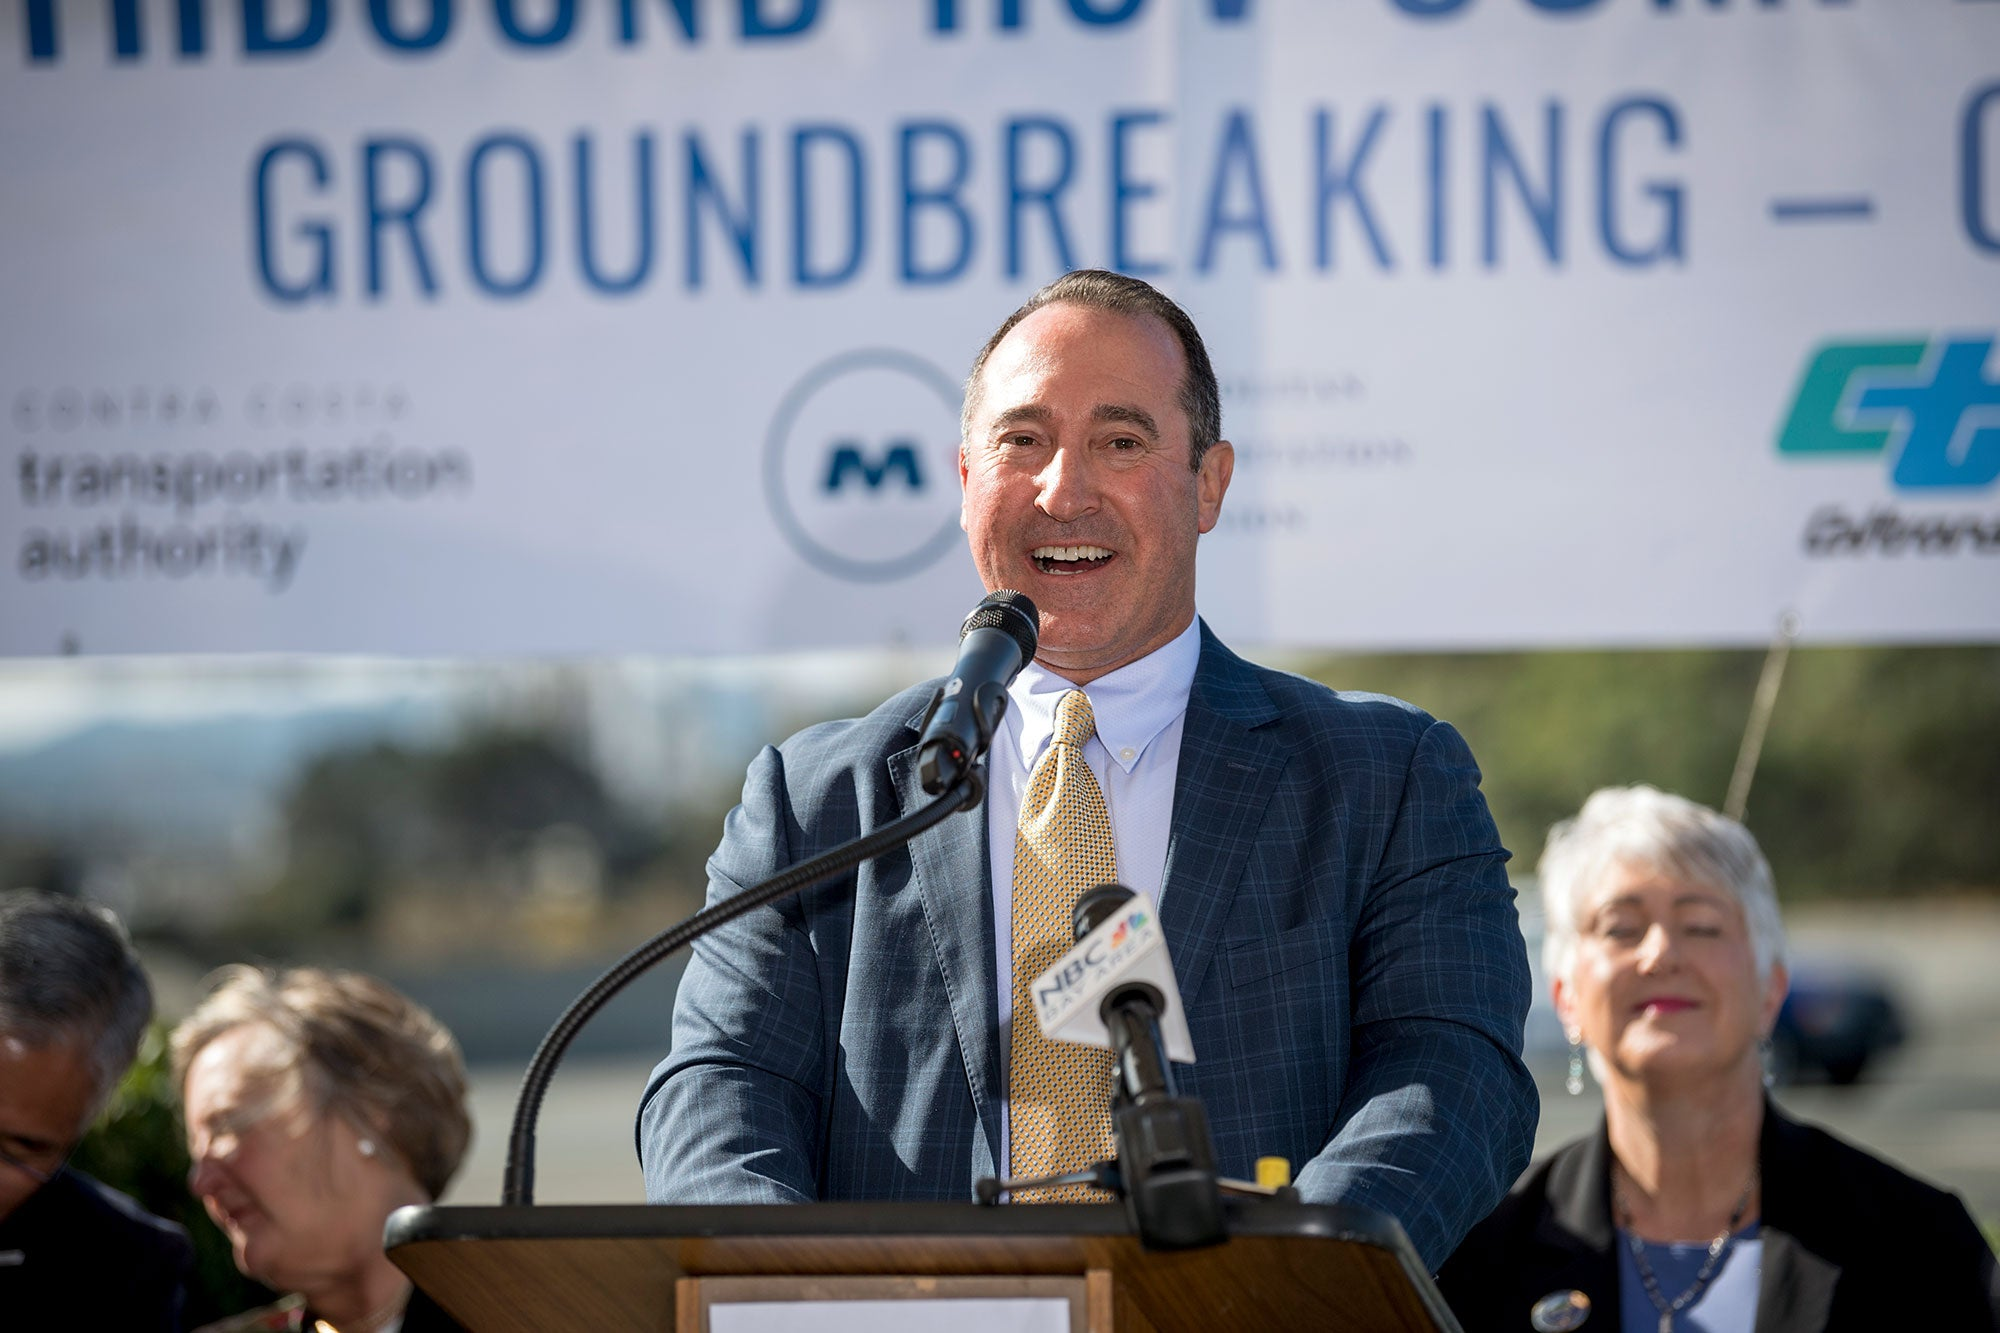 Groundbreaking for I-680 Southbound Express Lanes